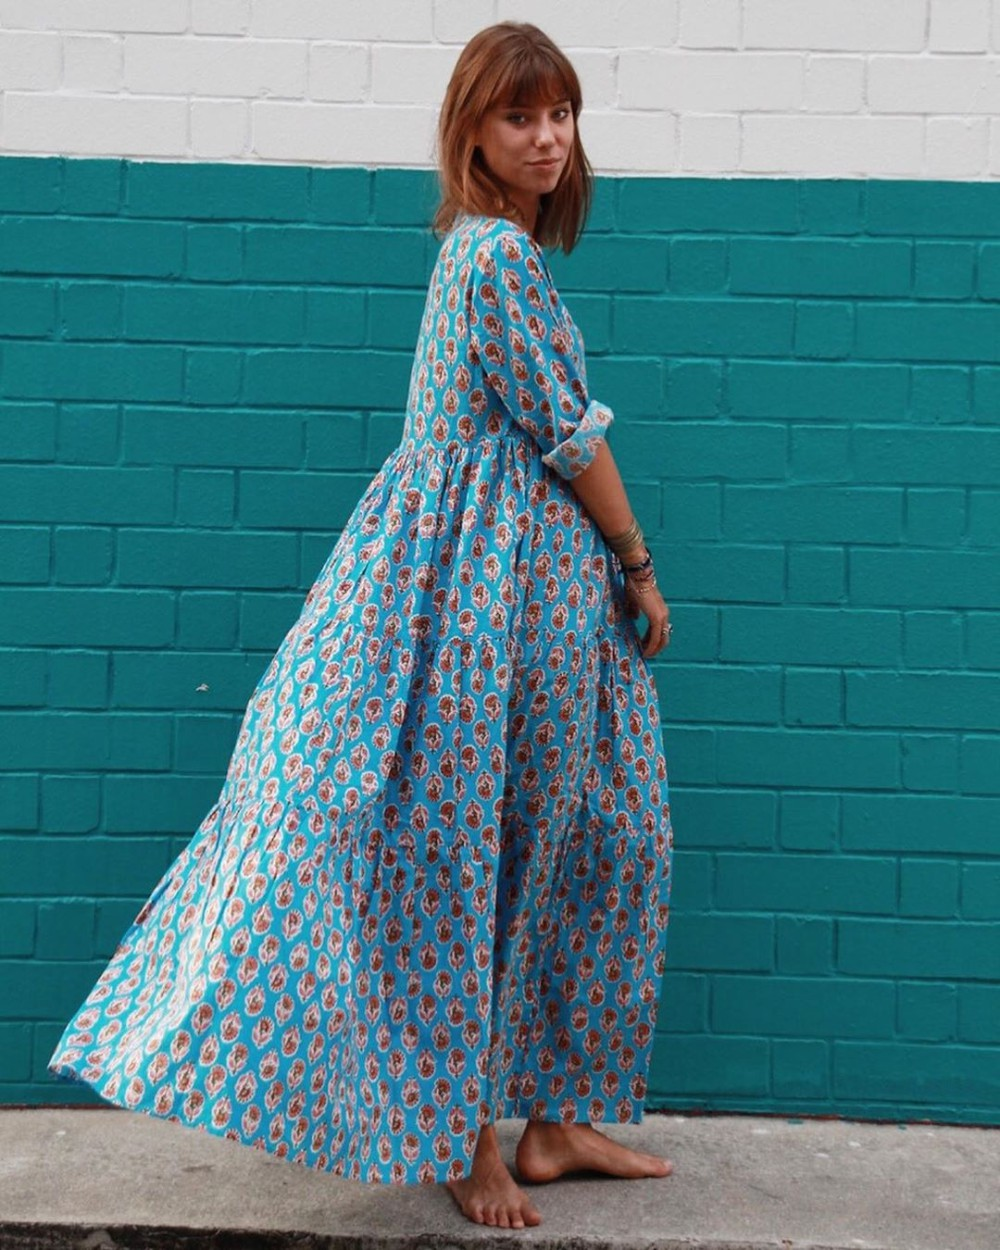 Turquoise and aqua classy outfit with dress day dress, skirt